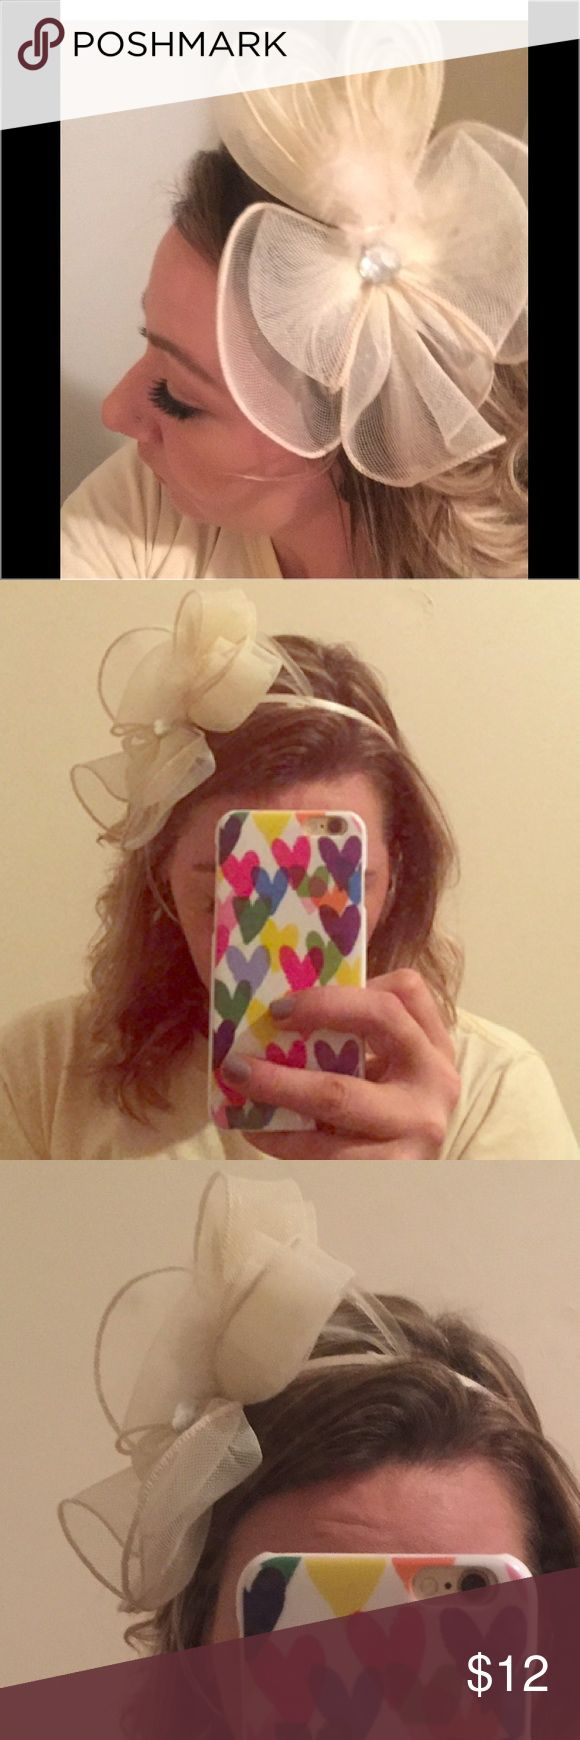 """ADORABLE """"hat head band""""!! This off white/ cream headband is too cute! It looks like a small hat on your side of the head. Totally secure with it being a headband though. Adorable and classy as can be! A must have for a party or to dress up any of your tops or dresses! It's been worn, cause I mean who wouldn't be able to wear this!!!?? But it's in GREAT shape! Accessories Hats"""